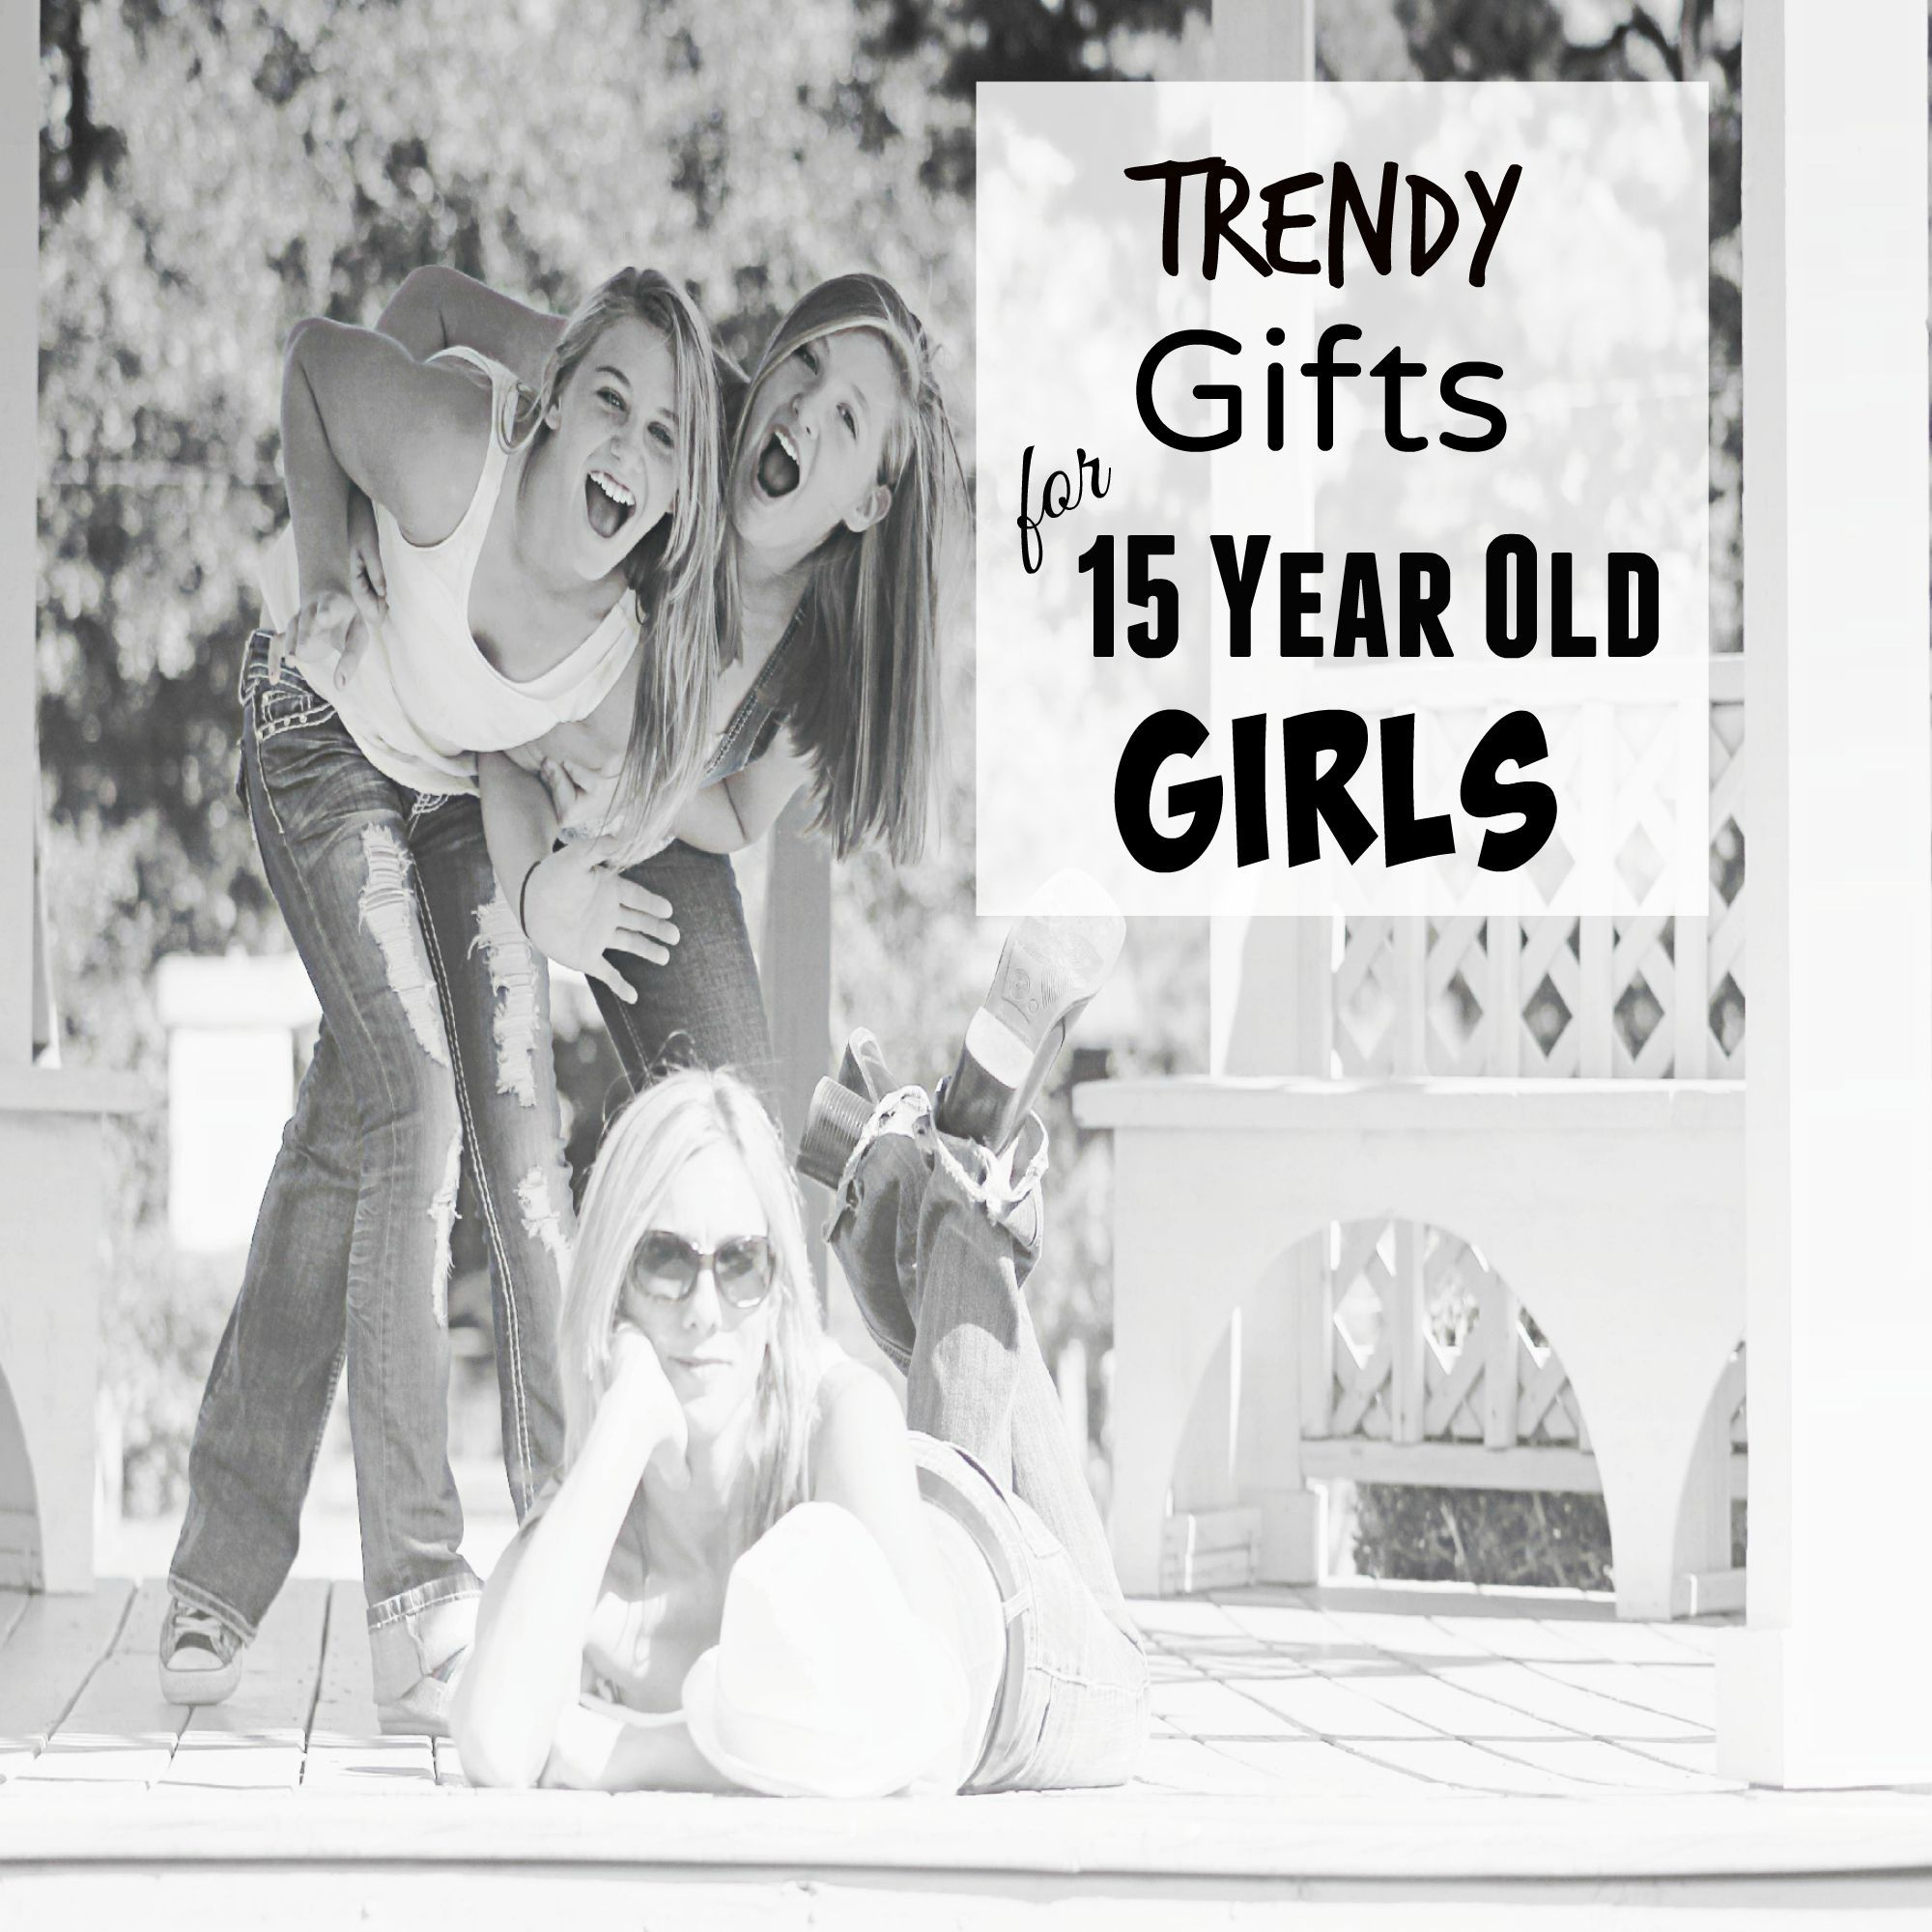 Trendy Gifts For 15 Year Old Girls These Are The BestGifts To Buy Those Fifteen Their Birthday And Christmas